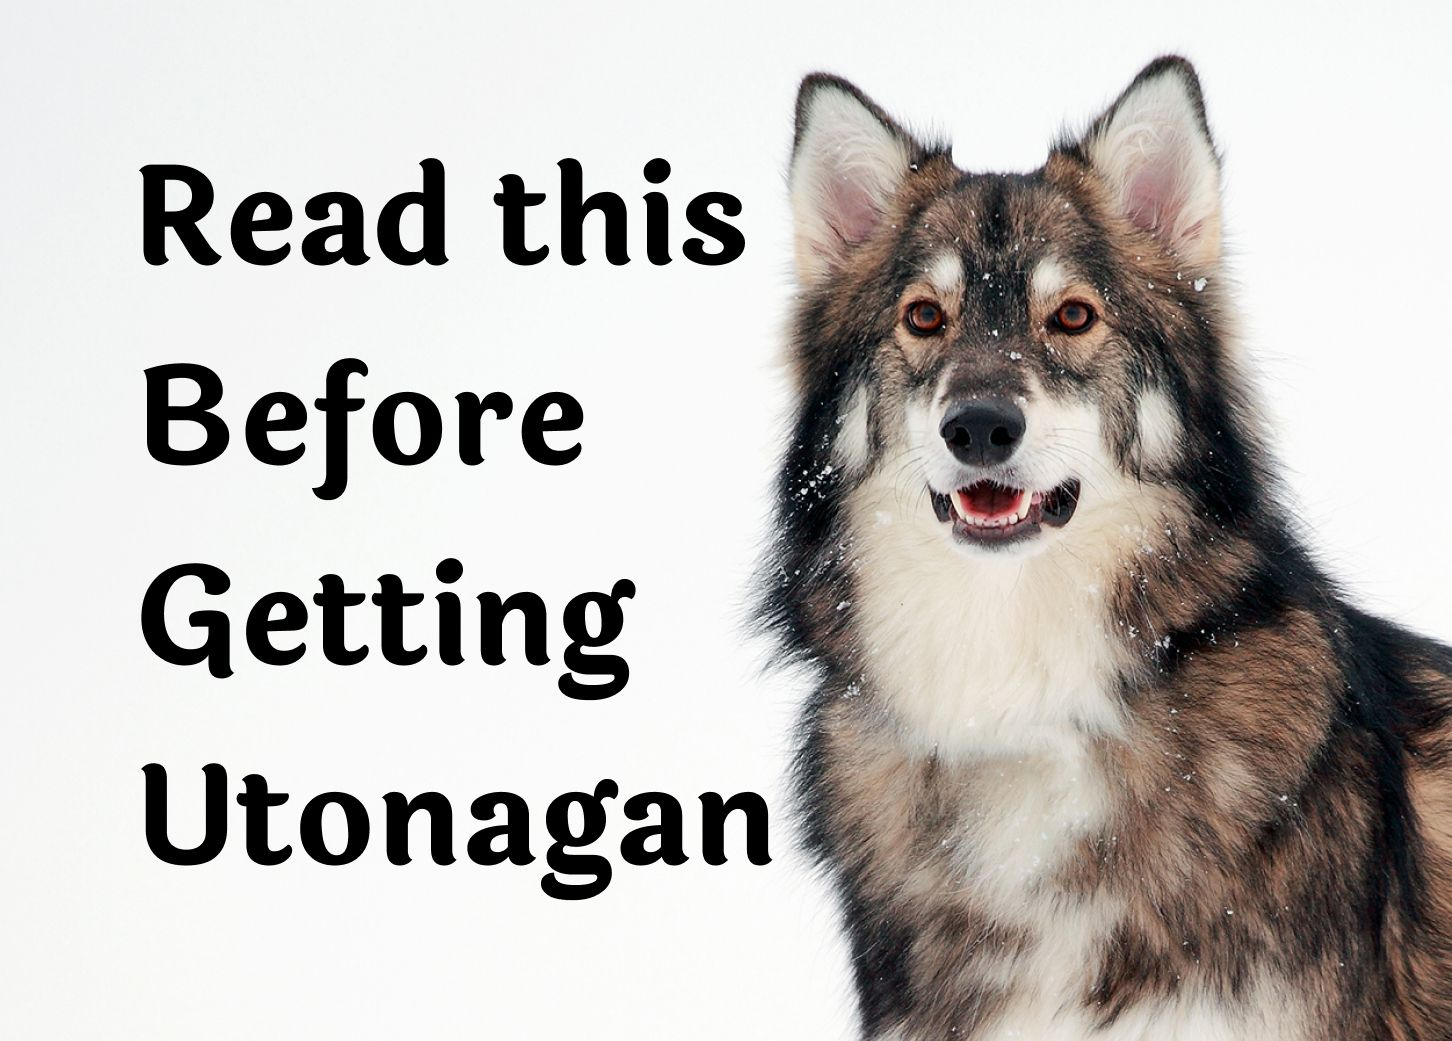 28 Questions to Consider Before Getting A Utonagan